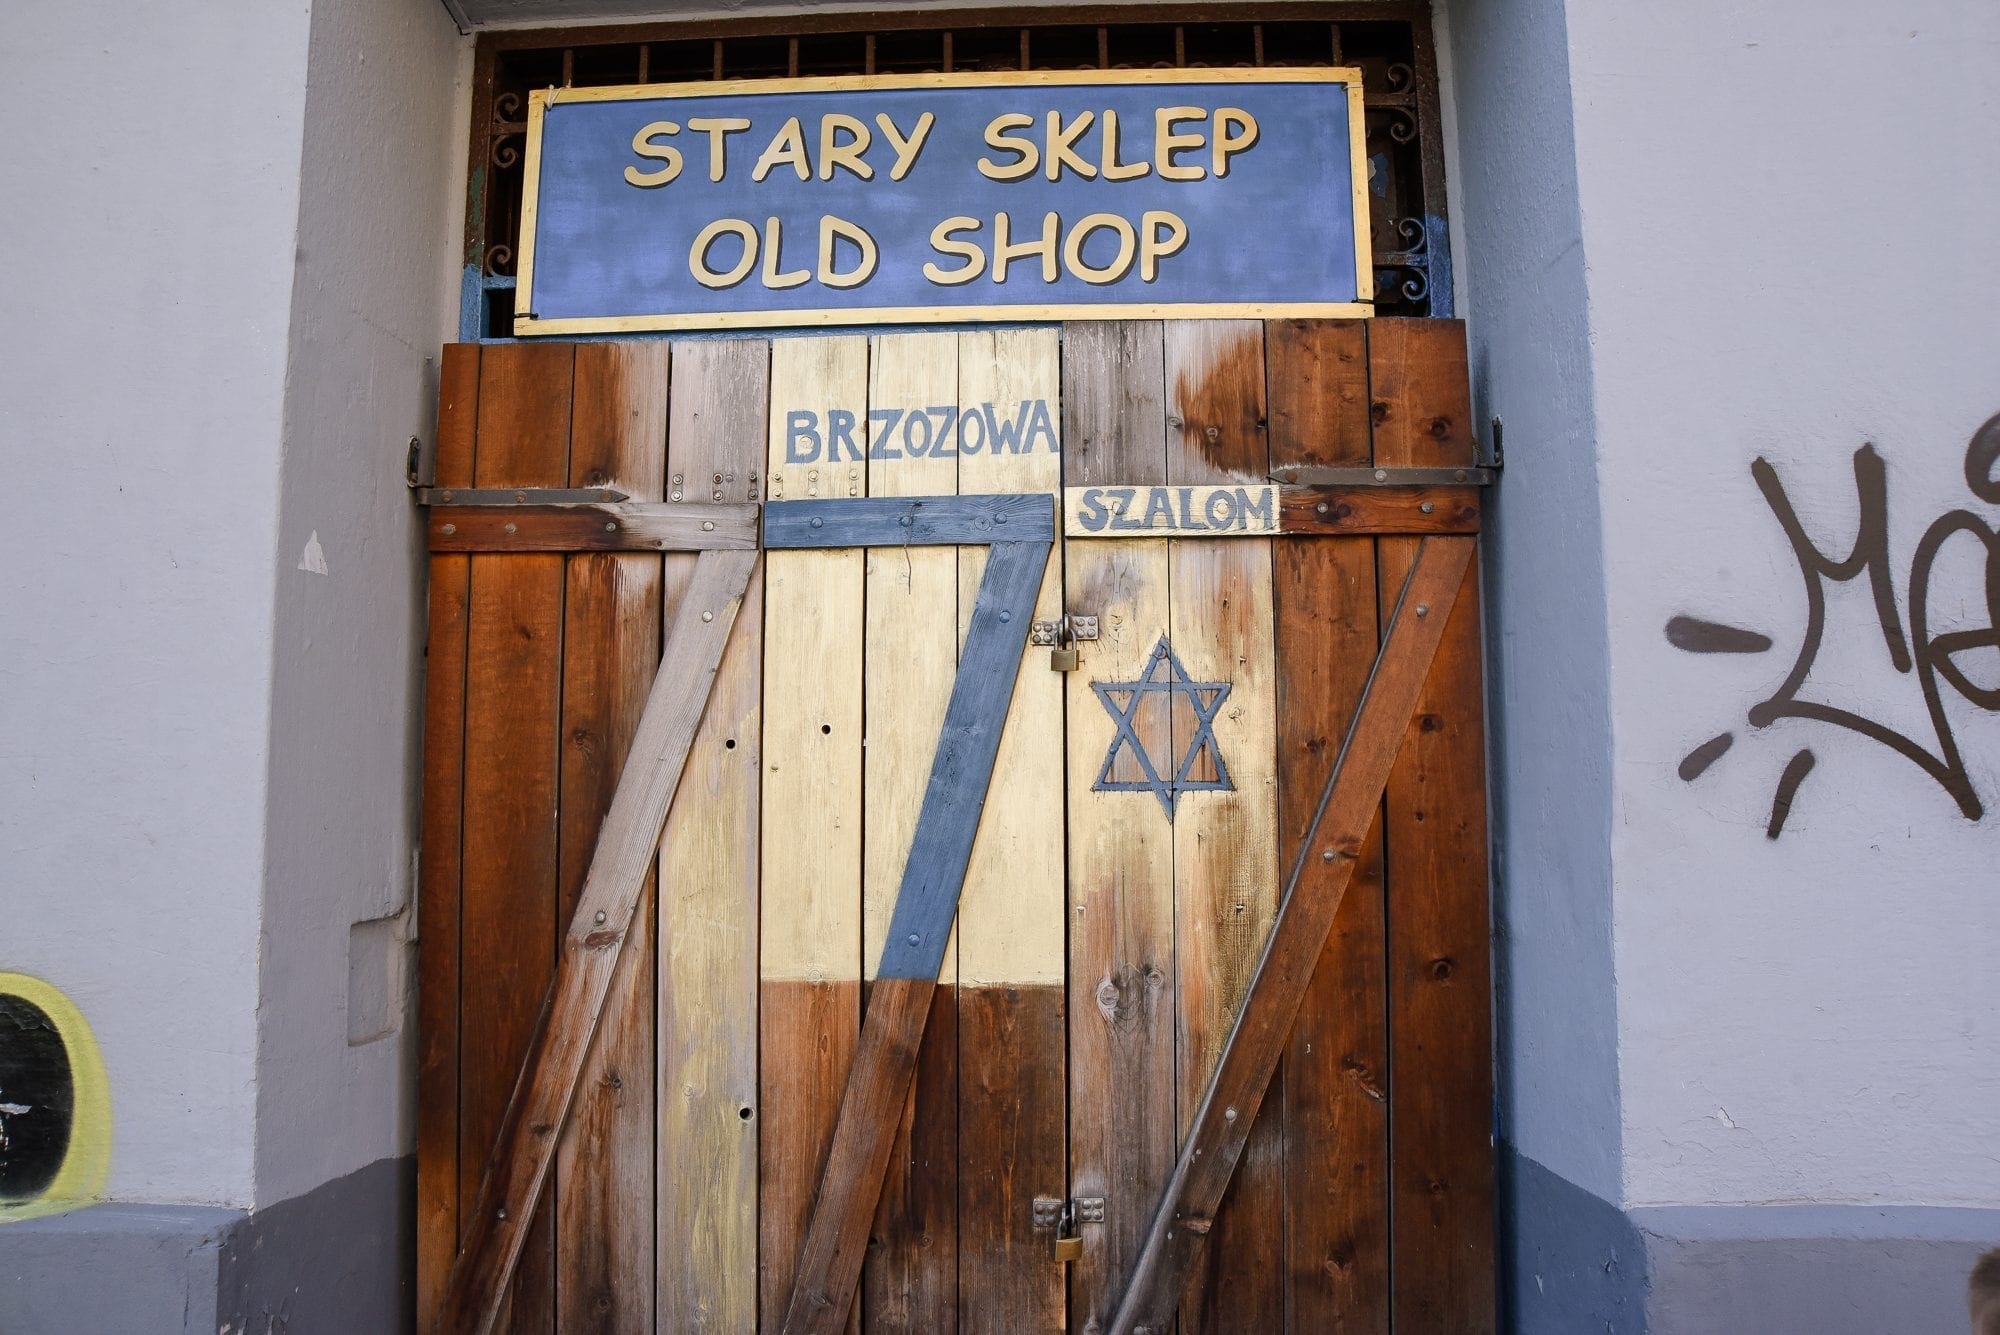 an old shop front in krakow